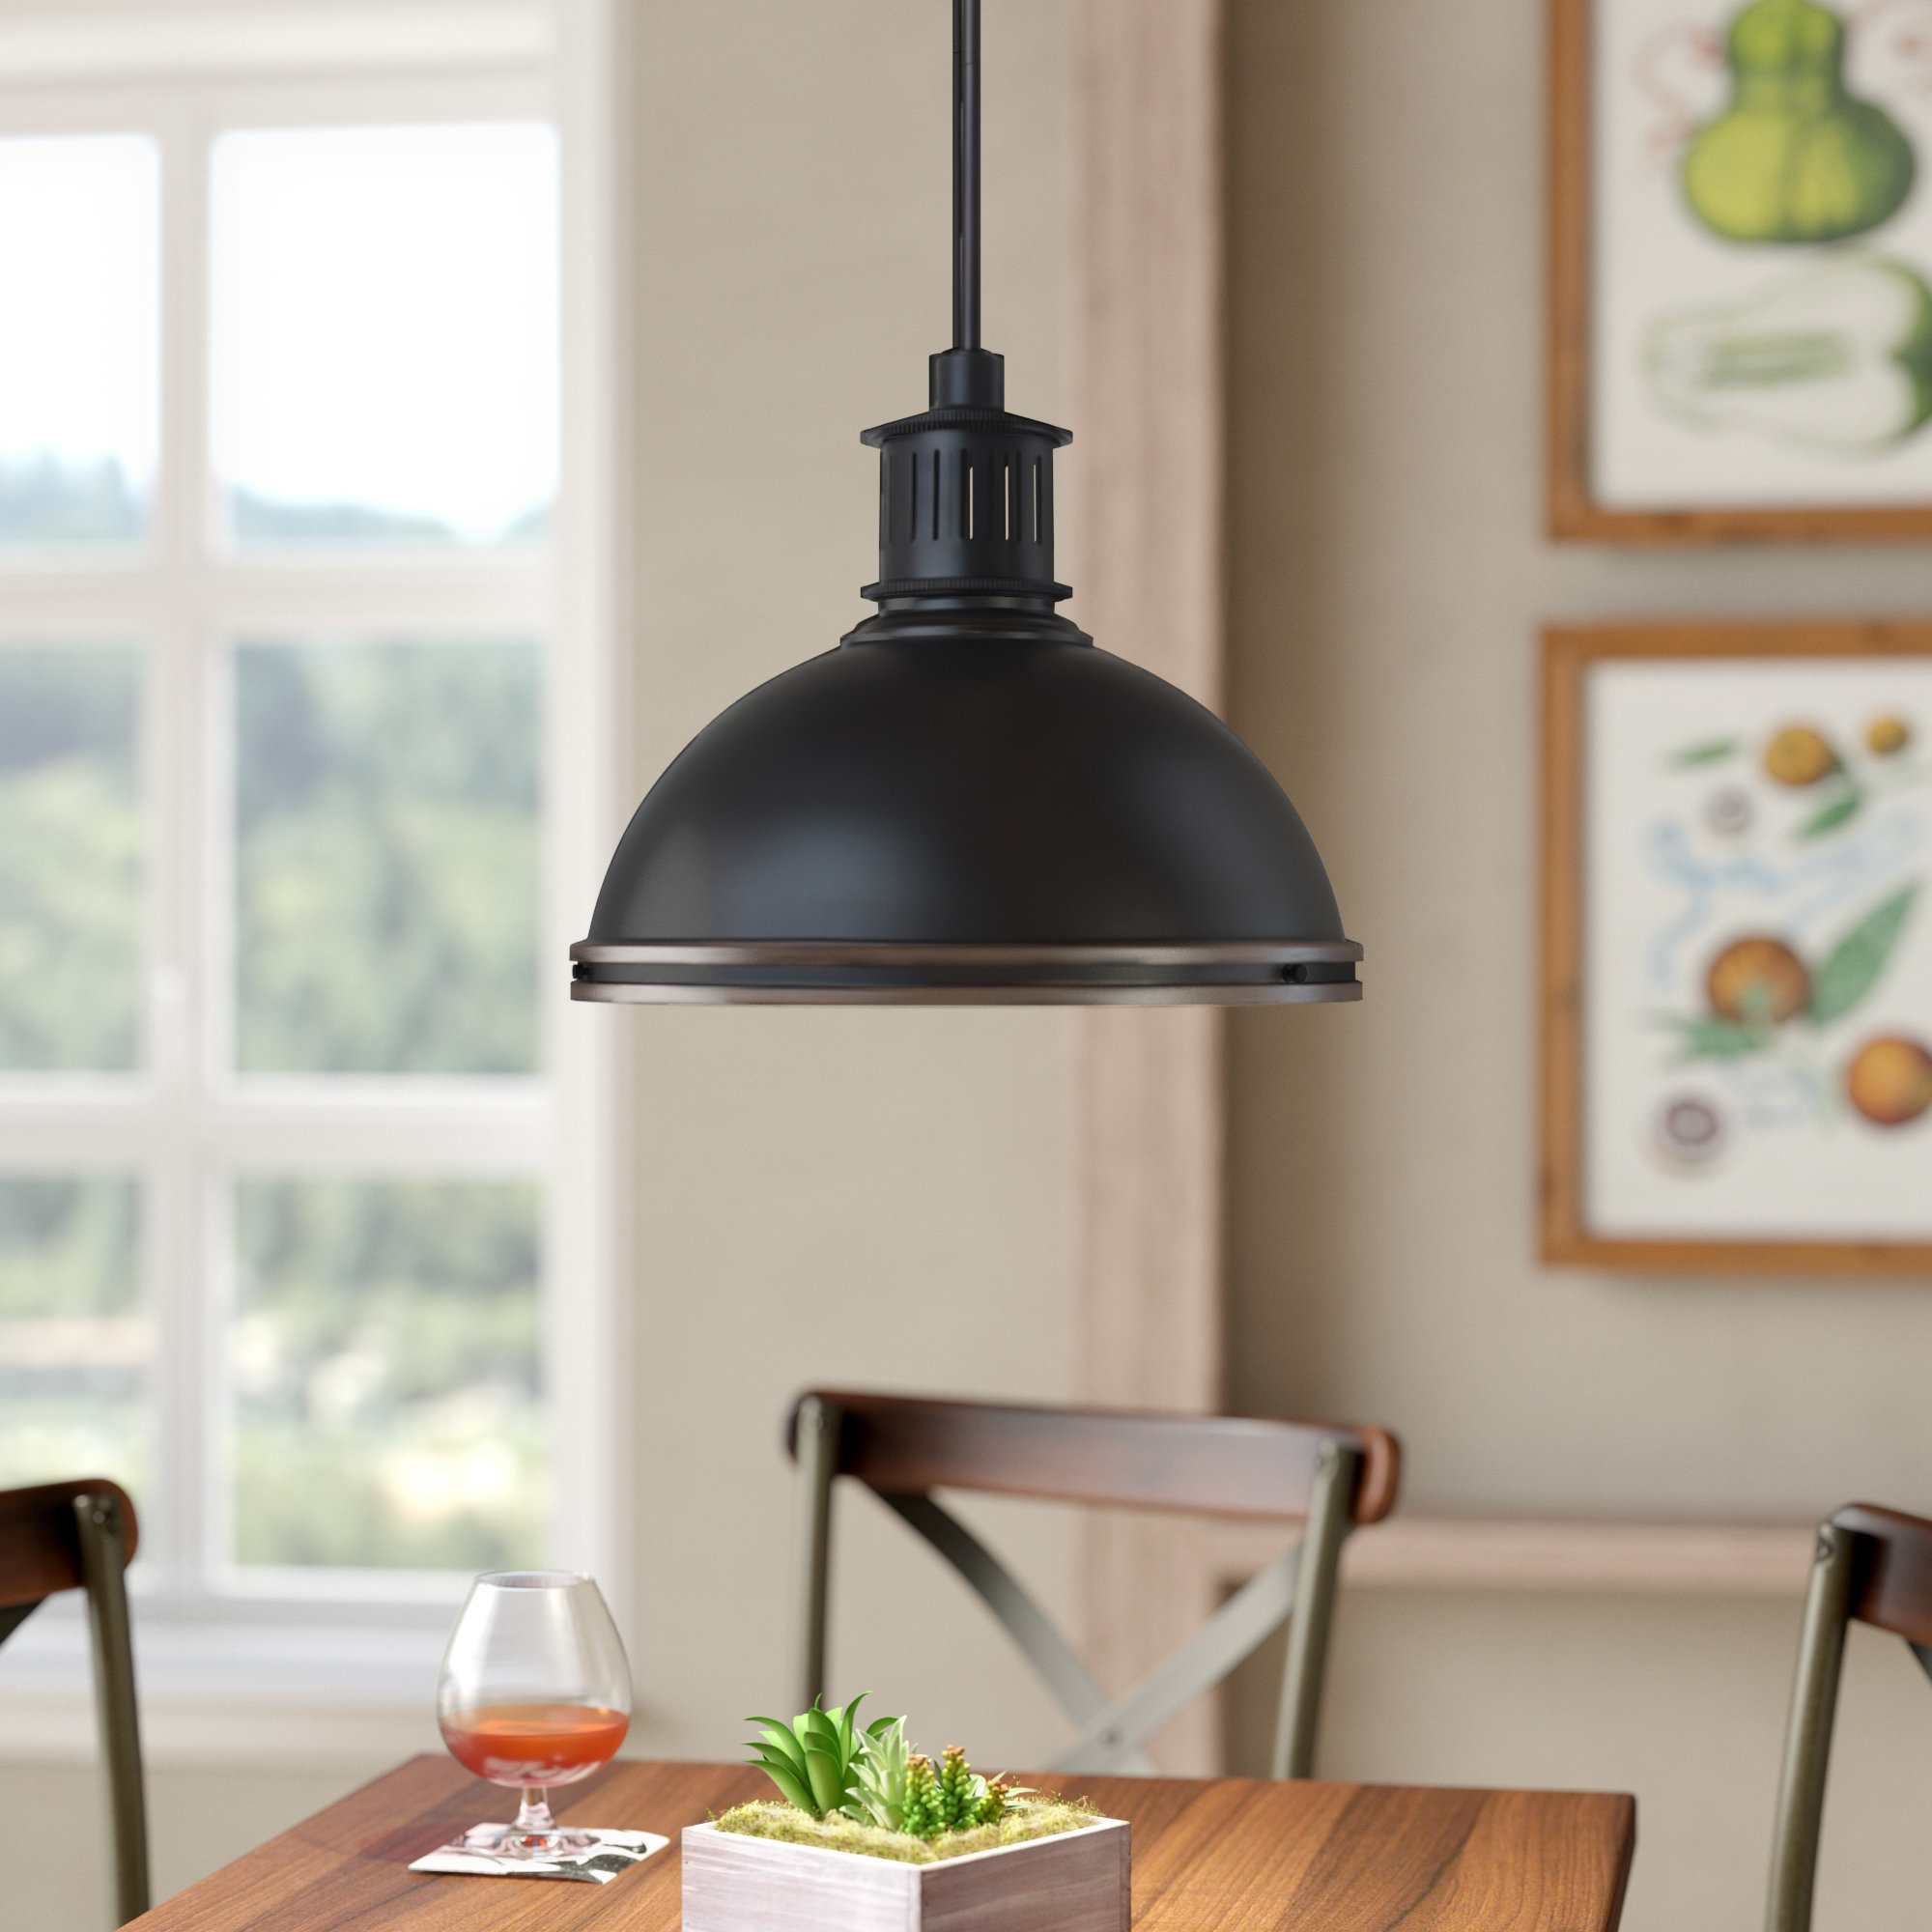 Orchard Hill 3 Light Dome Pendant Regarding Best And Newest Amara 3 Light Dome Pendants (View 18 of 25)